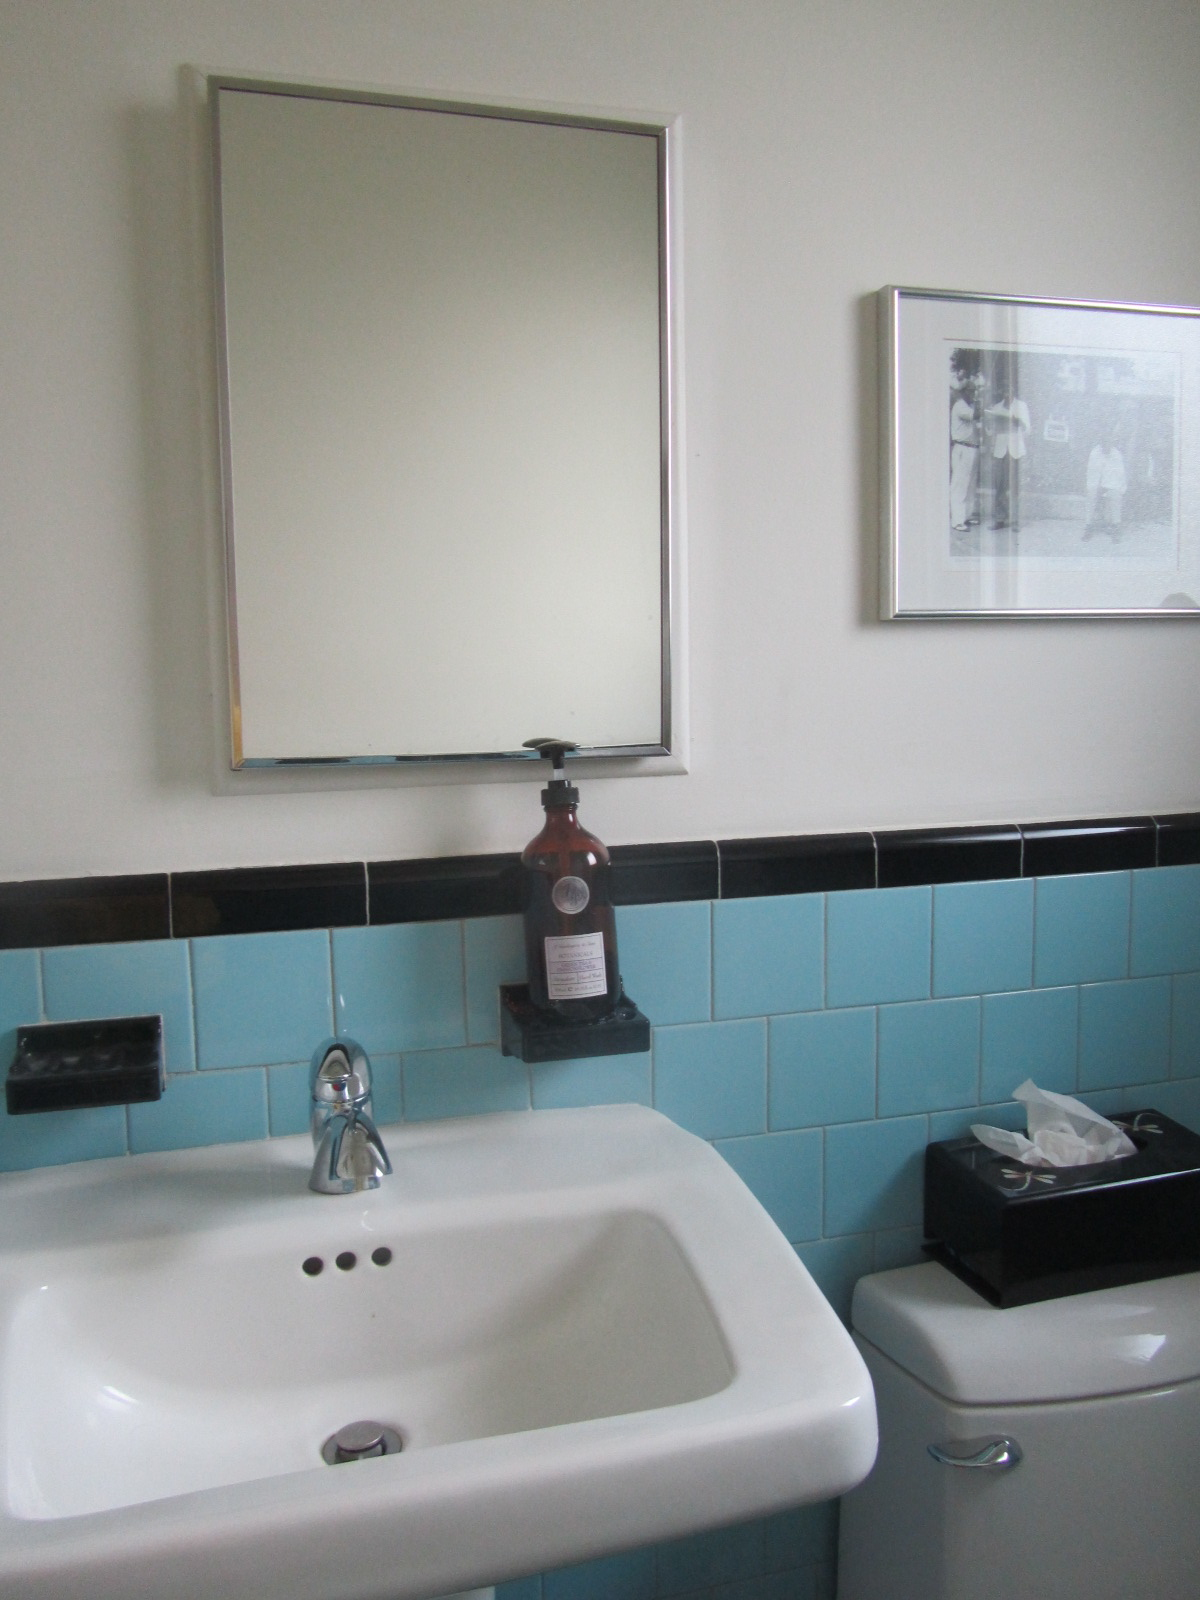 How to Stage an Old Bathroom for Home Sale   zenshmen.com   Staging ideas and Photos